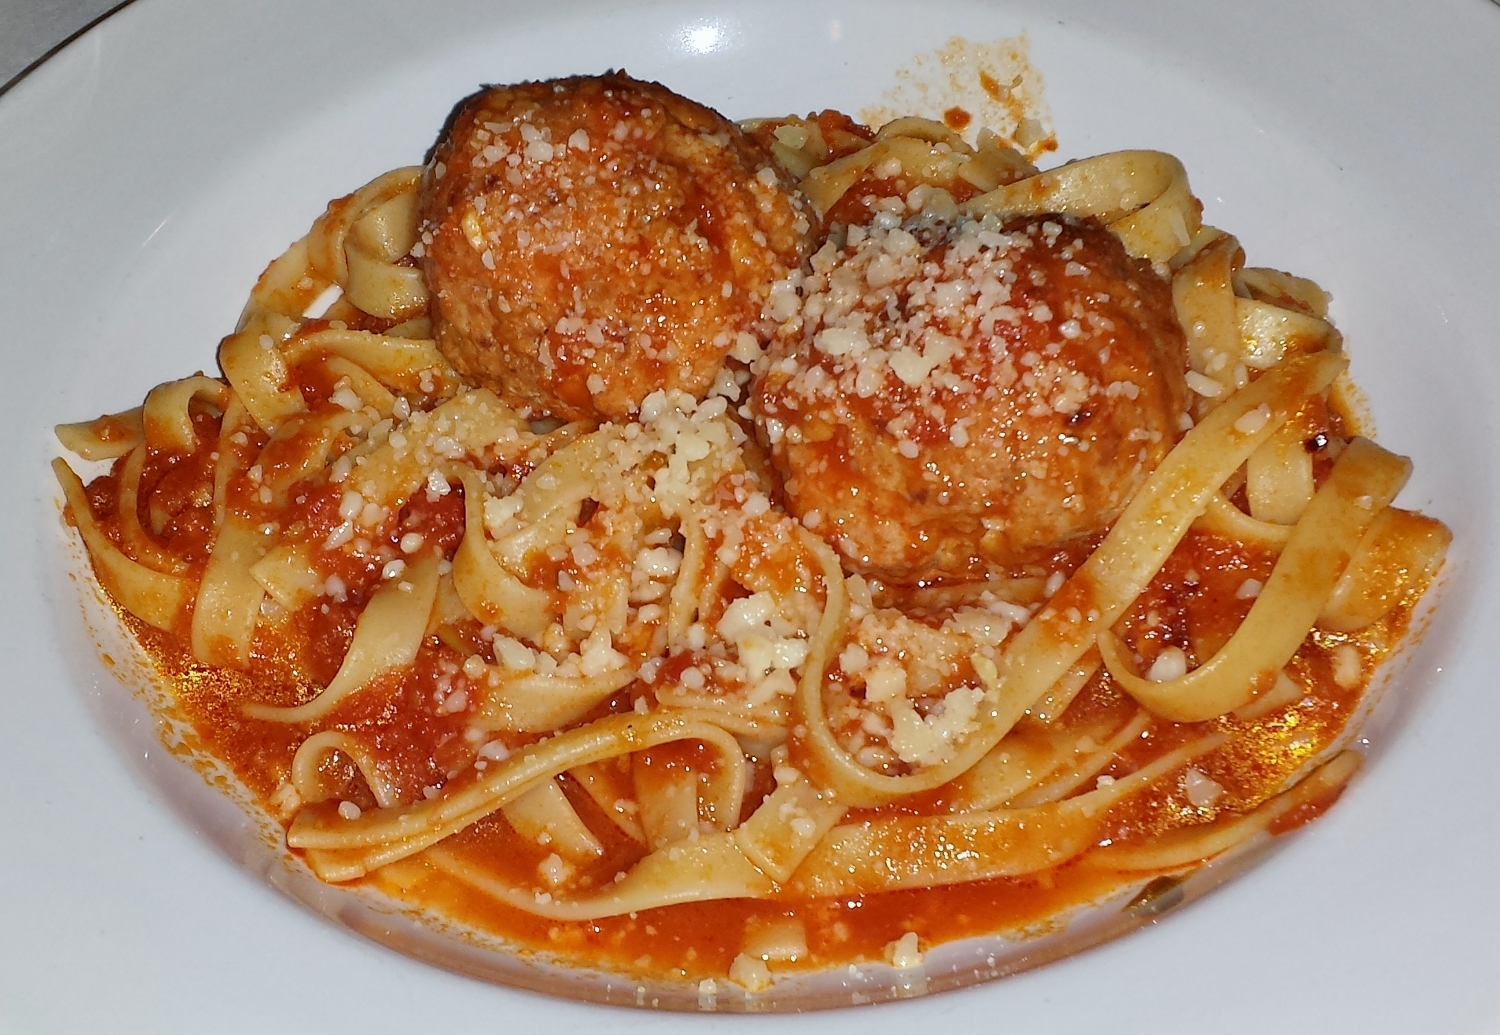 Homemade fettucine with red sauce and very light meatballs - pure comfort